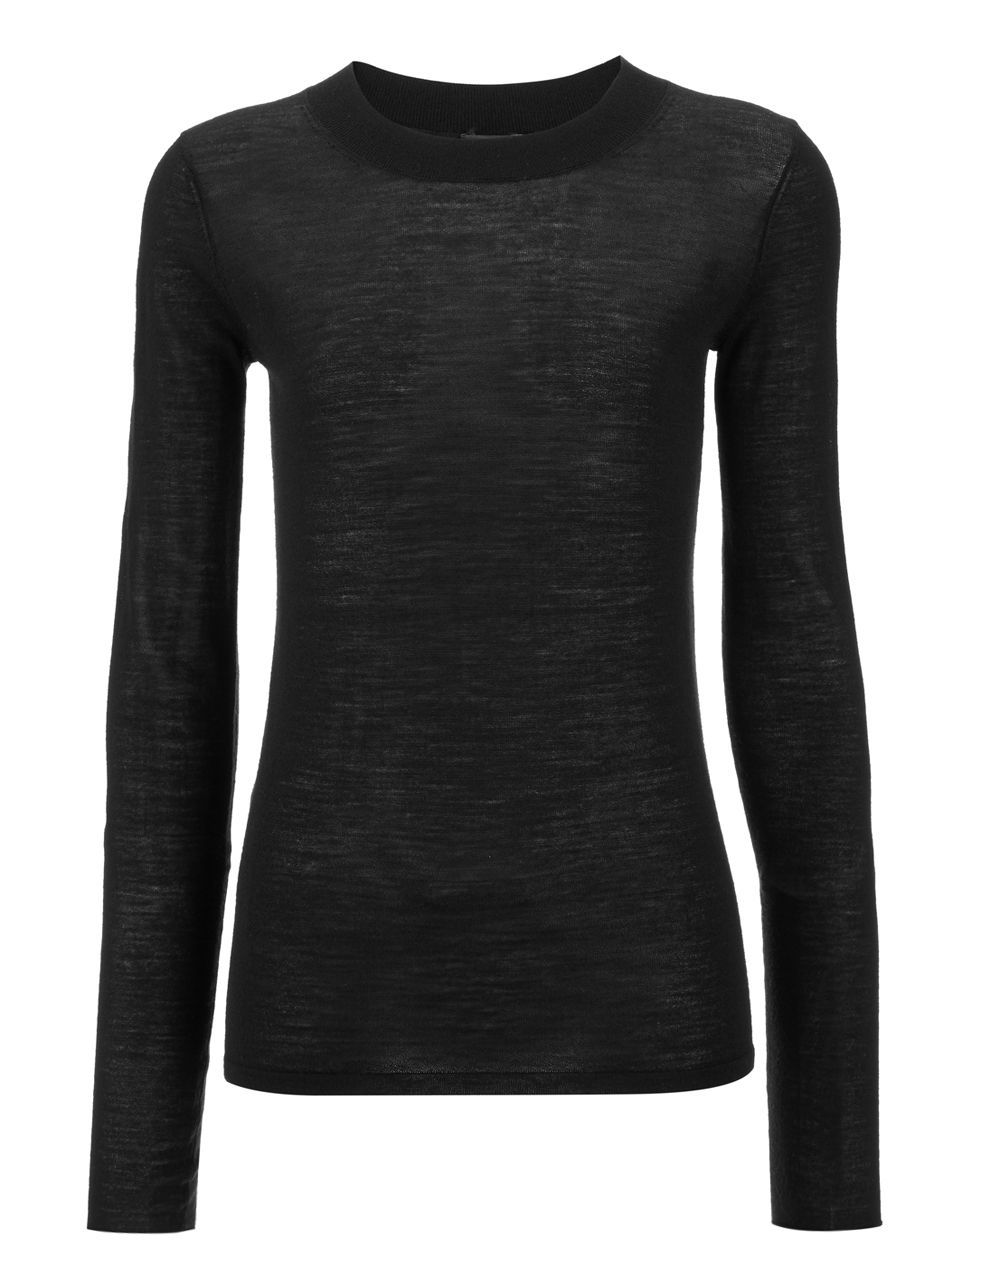 Transparent Knit Top In Black - neckline: round neck; pattern: plain; style: standard; predominant colour: black; occasions: casual, work, creative work; length: standard; fibres: wool - mix; fit: standard fit; sleeve length: long sleeve; sleeve style: standard; texture group: knits/crochet; pattern type: knitted - fine stitch; season: a/w 2015; wardrobe: basic